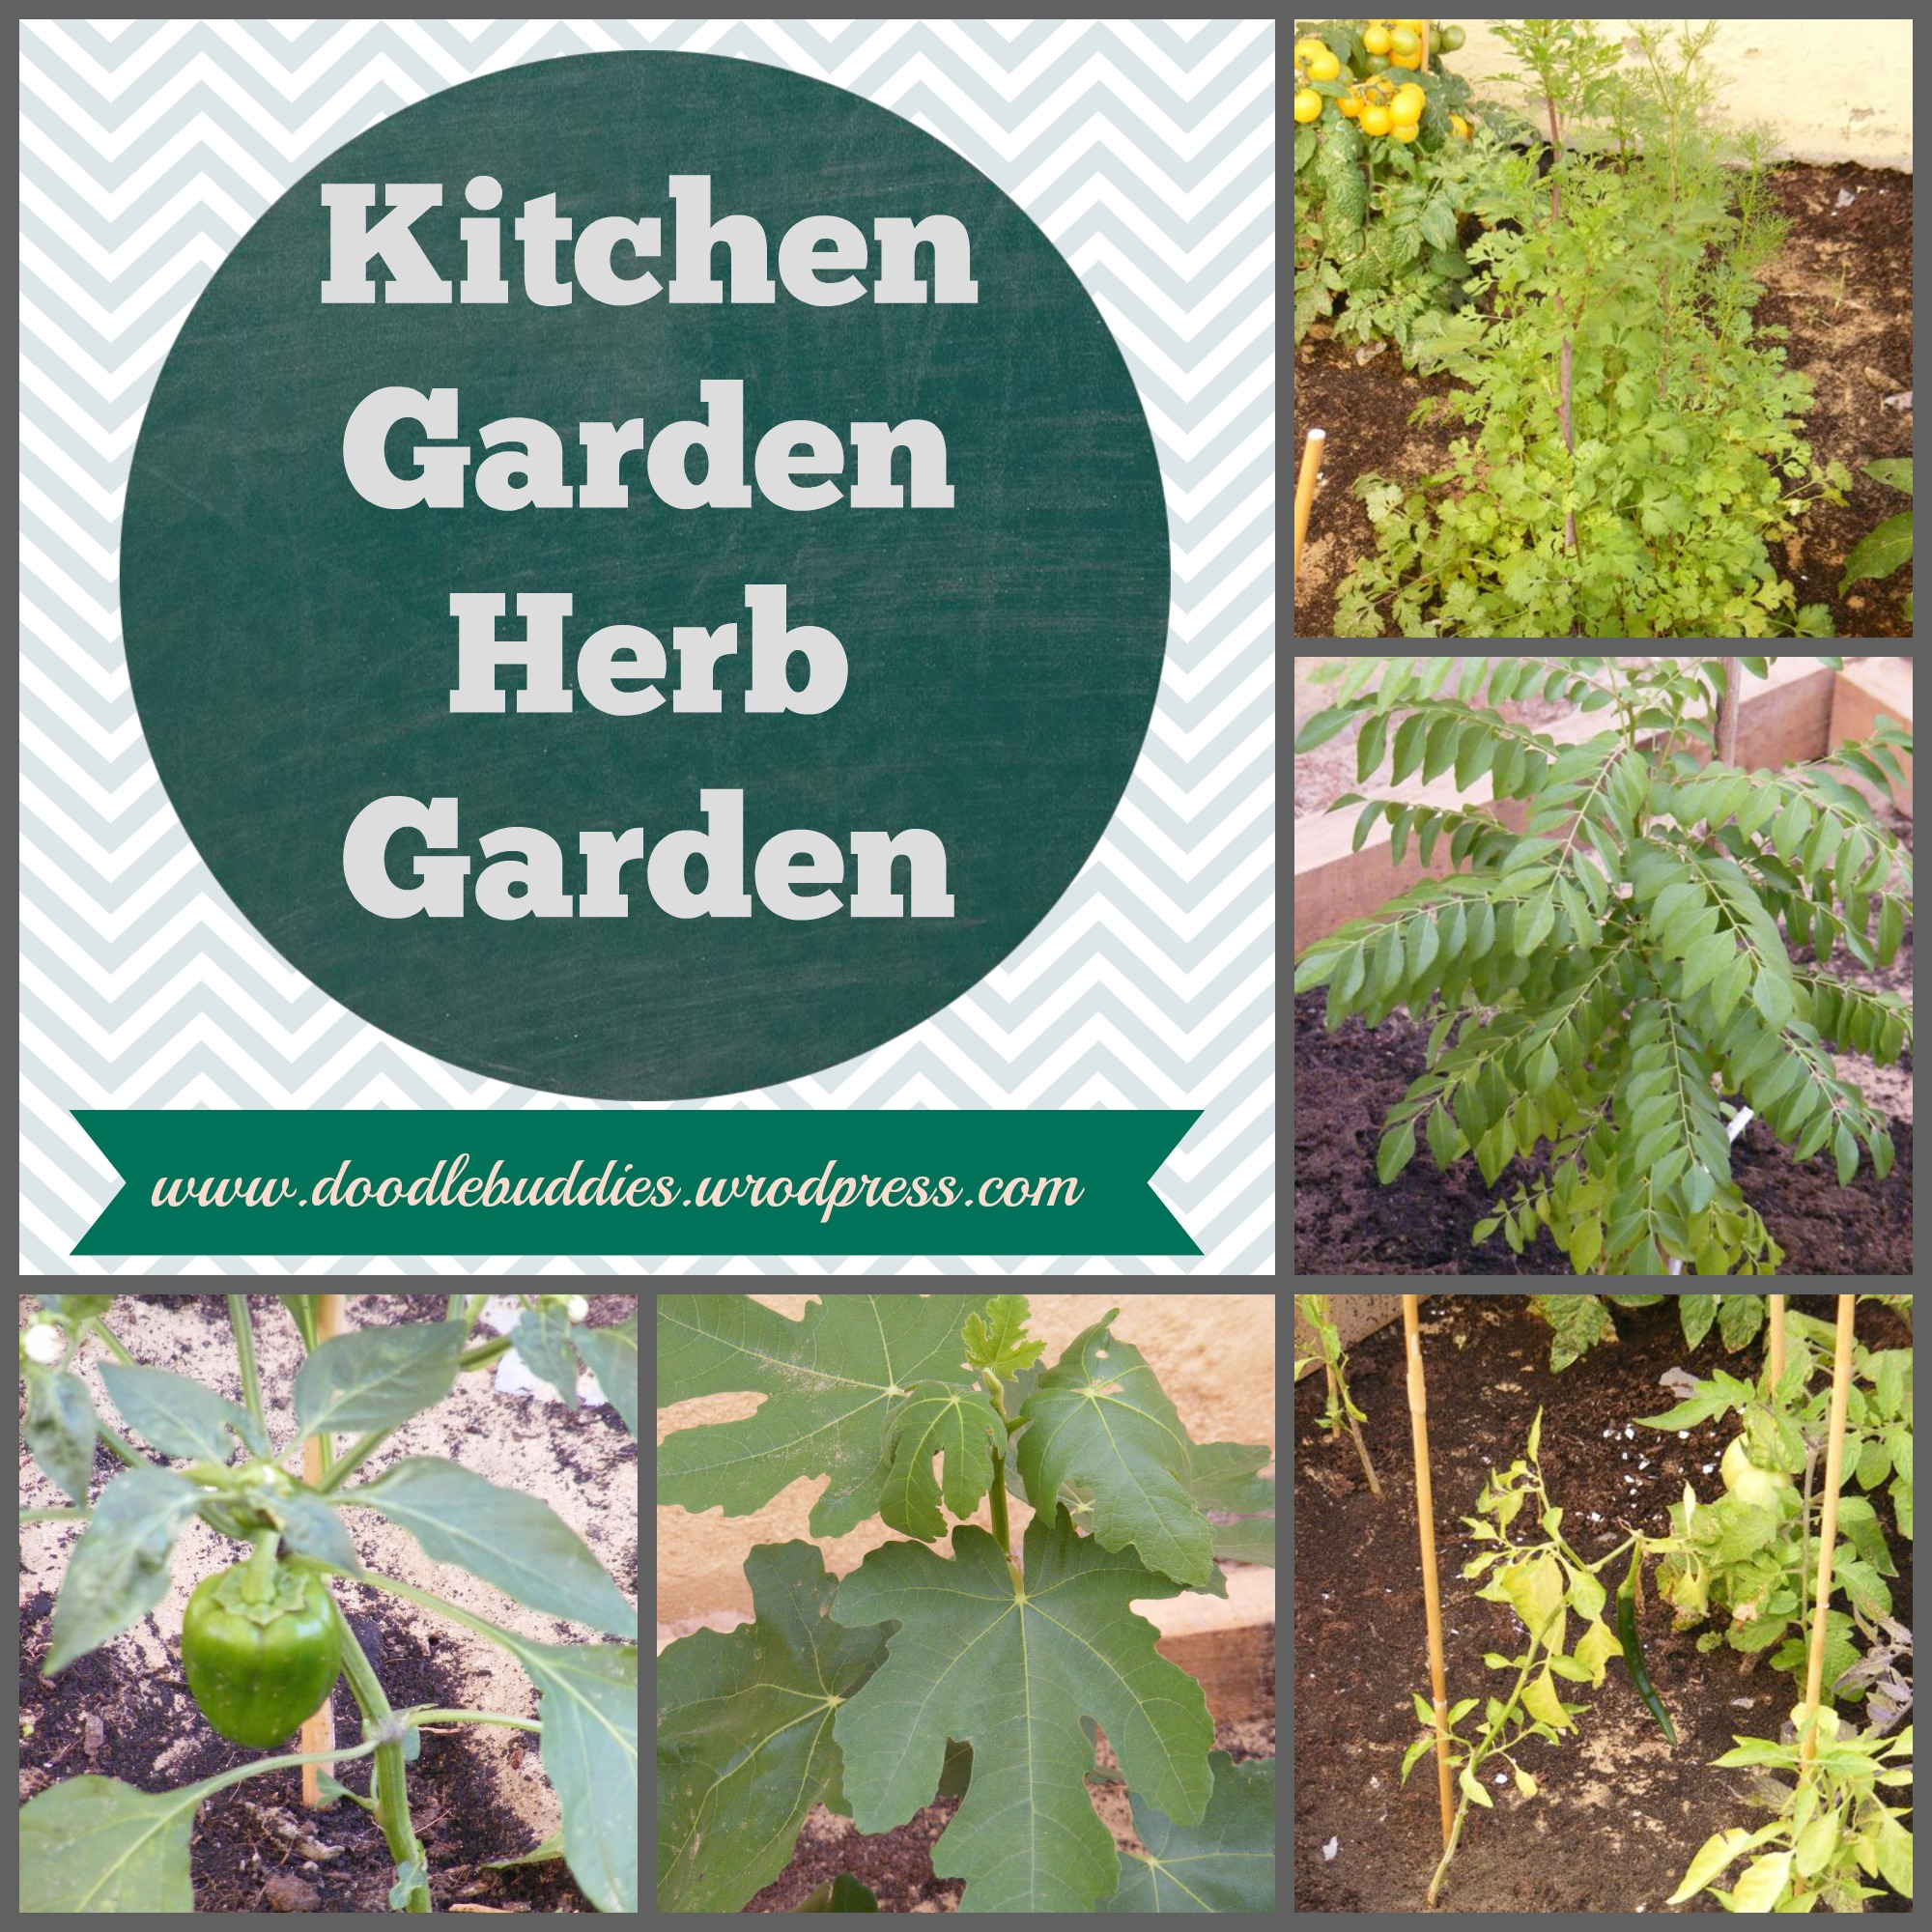 Kitchen garden a k a herb garden for Kitchen herb garden